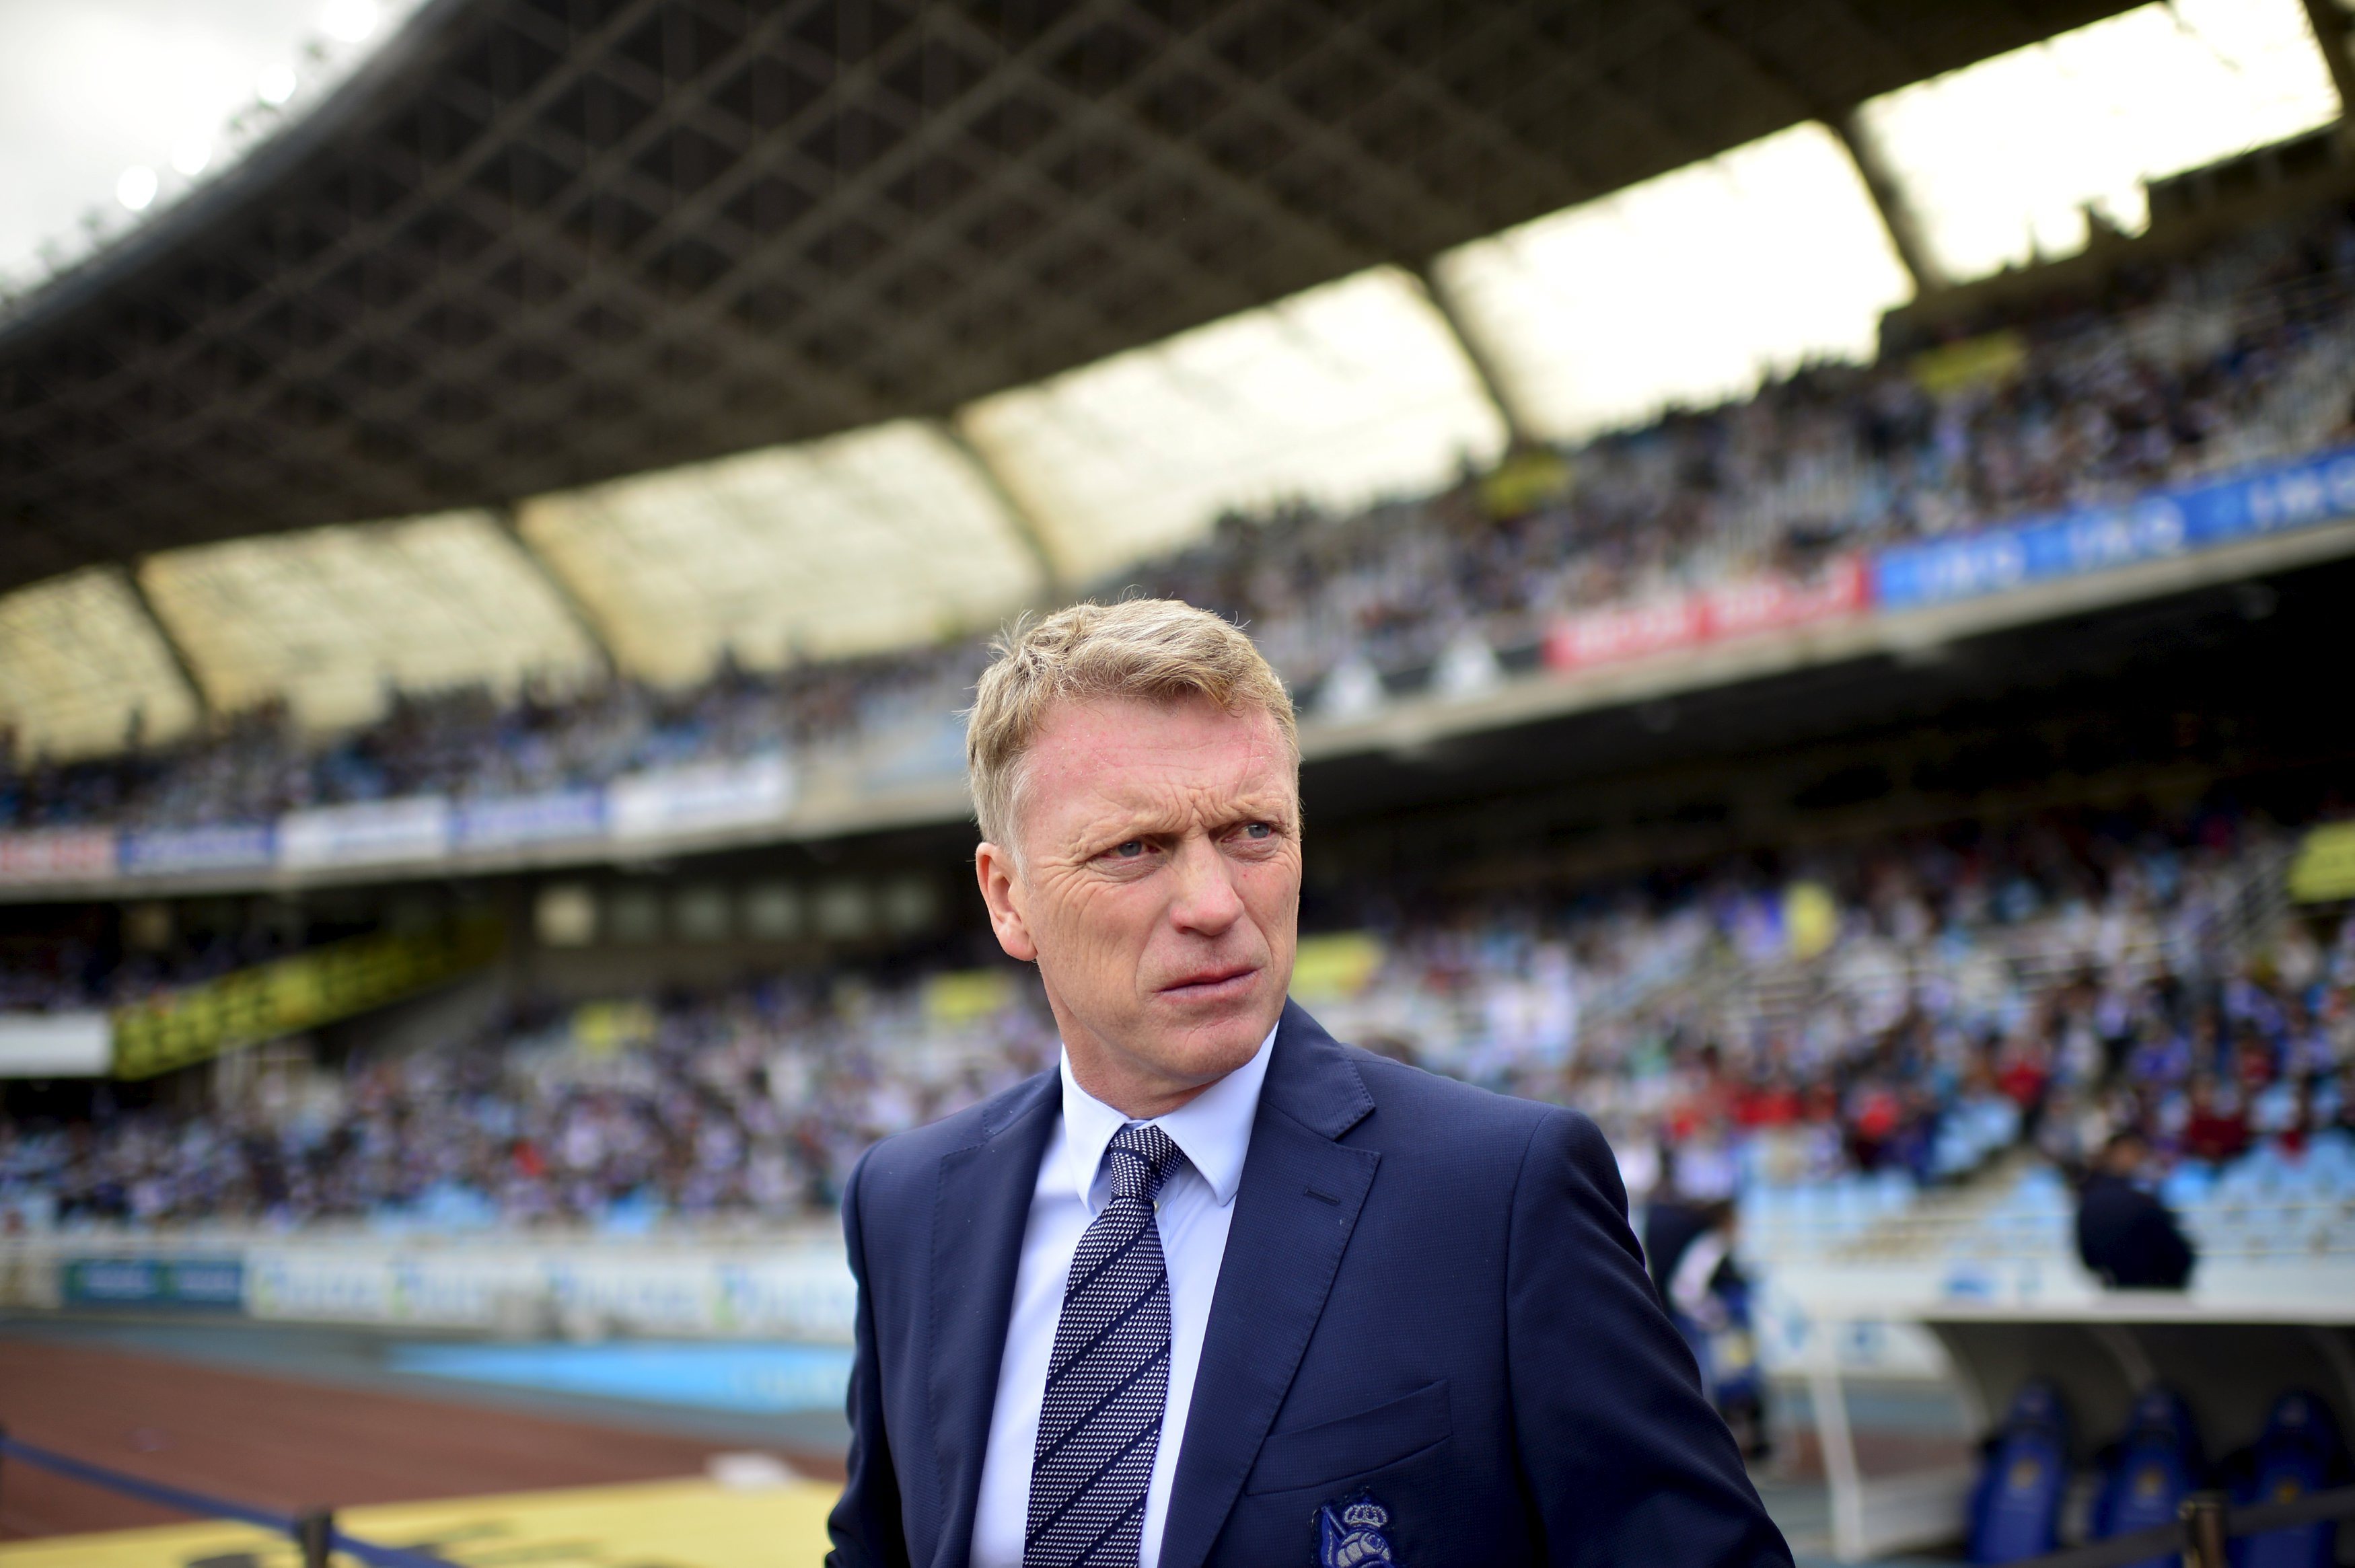 Real Sociedad coach David Moyes is pictured before their Spanish first division soccer match against Atletico Madrid at Anoeta stadium in San Sebastian, northern Spain, October 18, 2015. Photo: Reuters